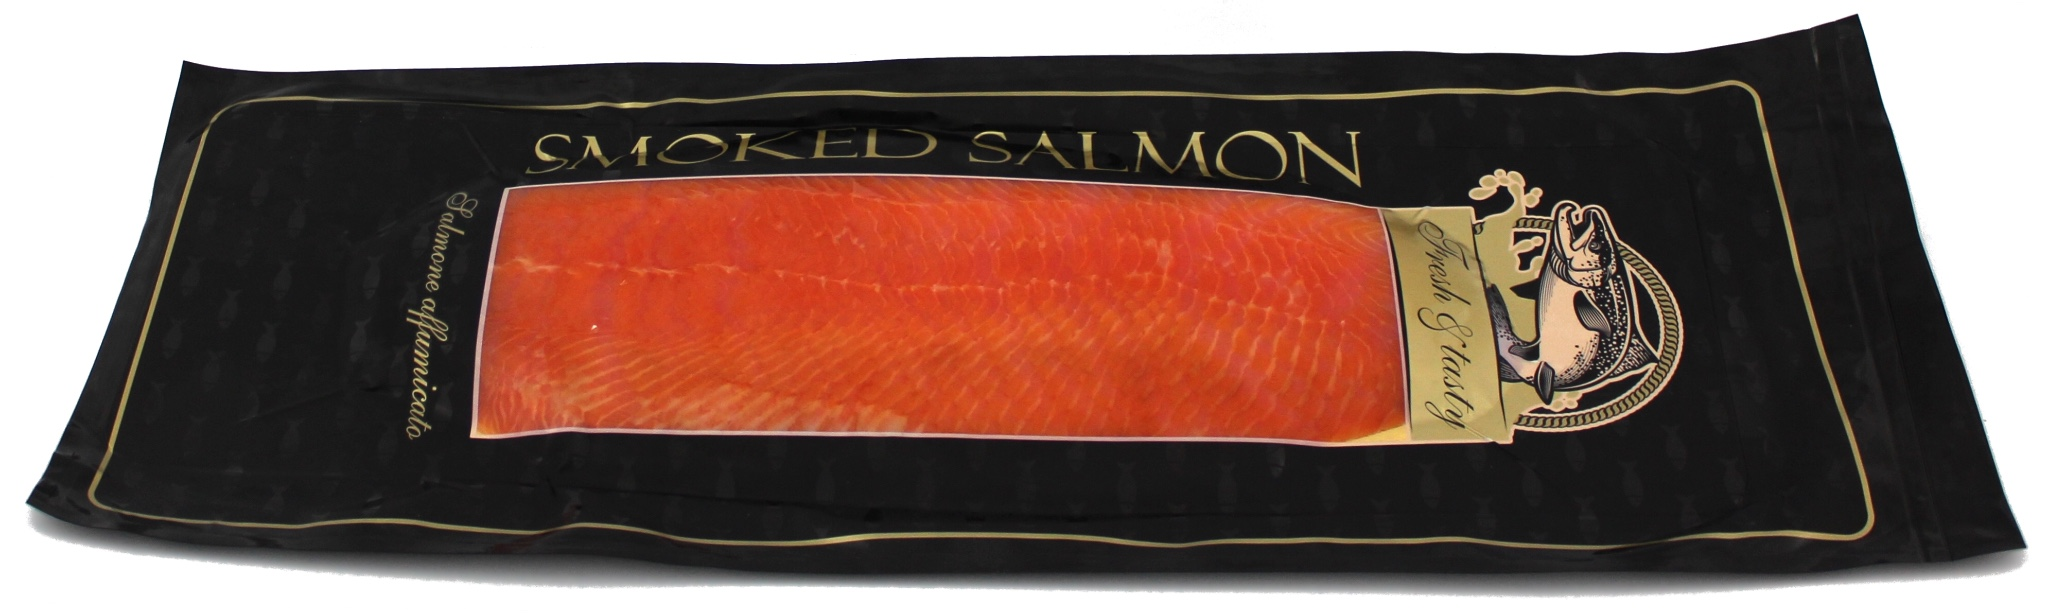 Scottish salmon smoked from 0,9 to 1,4 kg